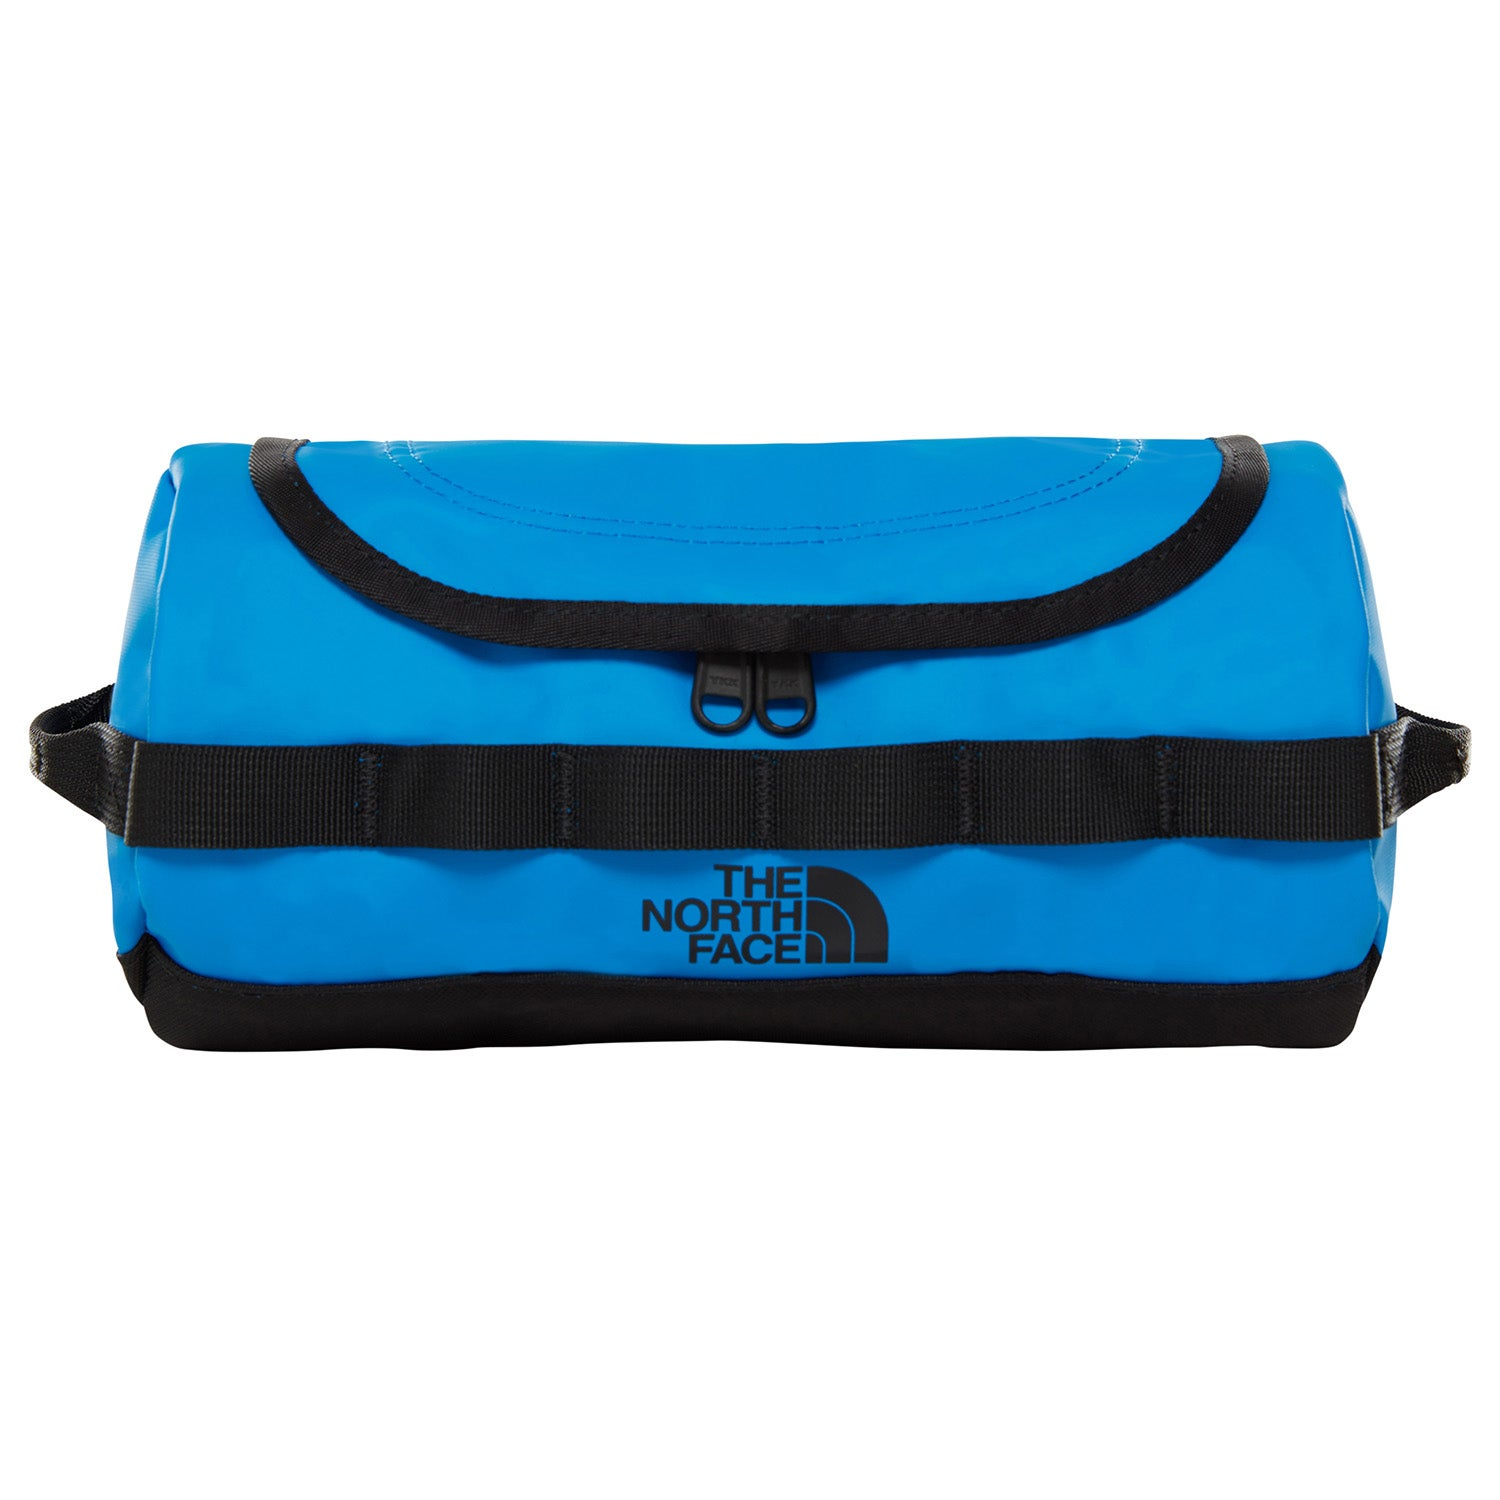 899e6a245f North Face Base Camp Travel Canister Unisex Toiletry Bag Blue One Size